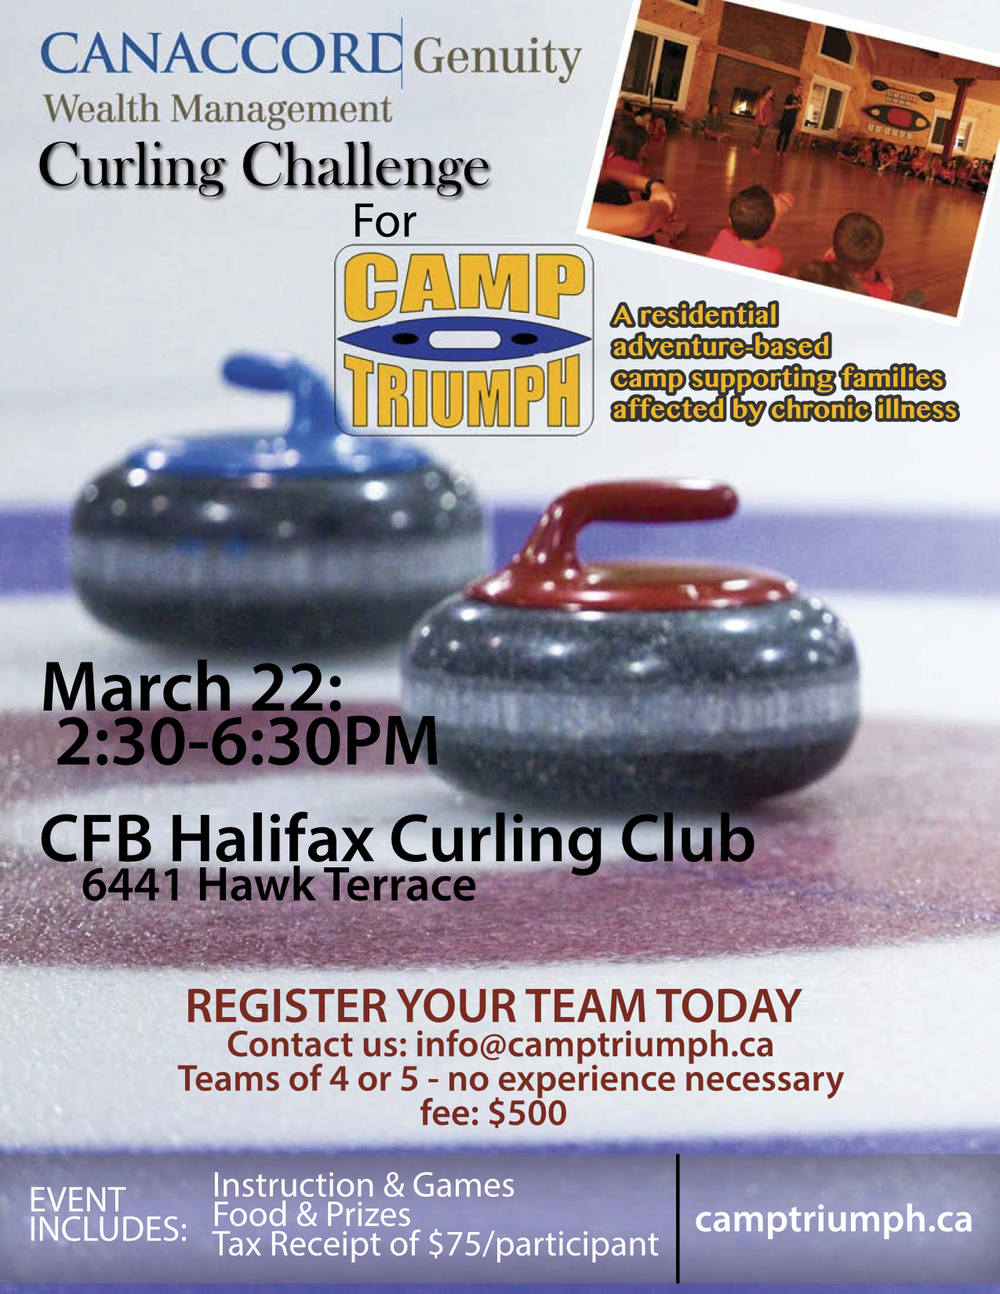 Curling Fundraiser Poster 2014 8x11 (email).jpg